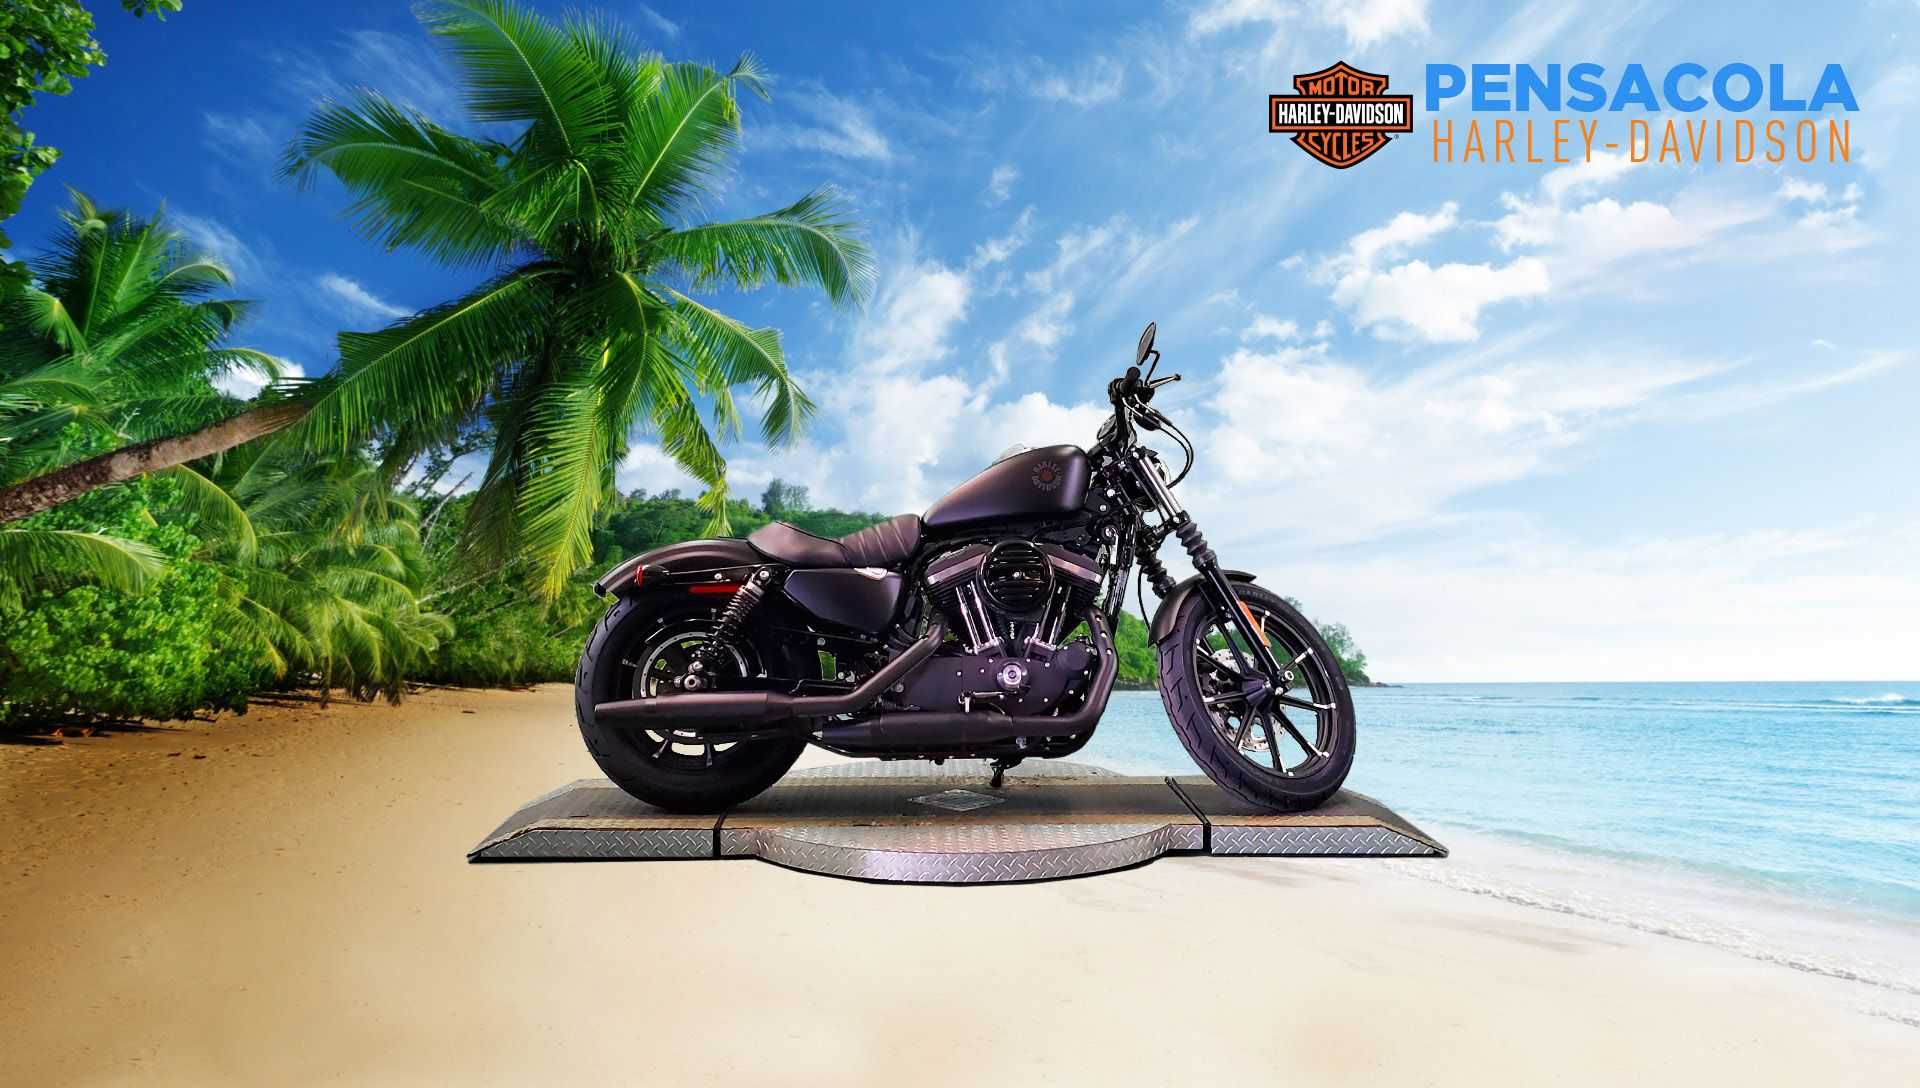 Pre-Owned 2020 Harley-Davidson Iron 883 XL883N